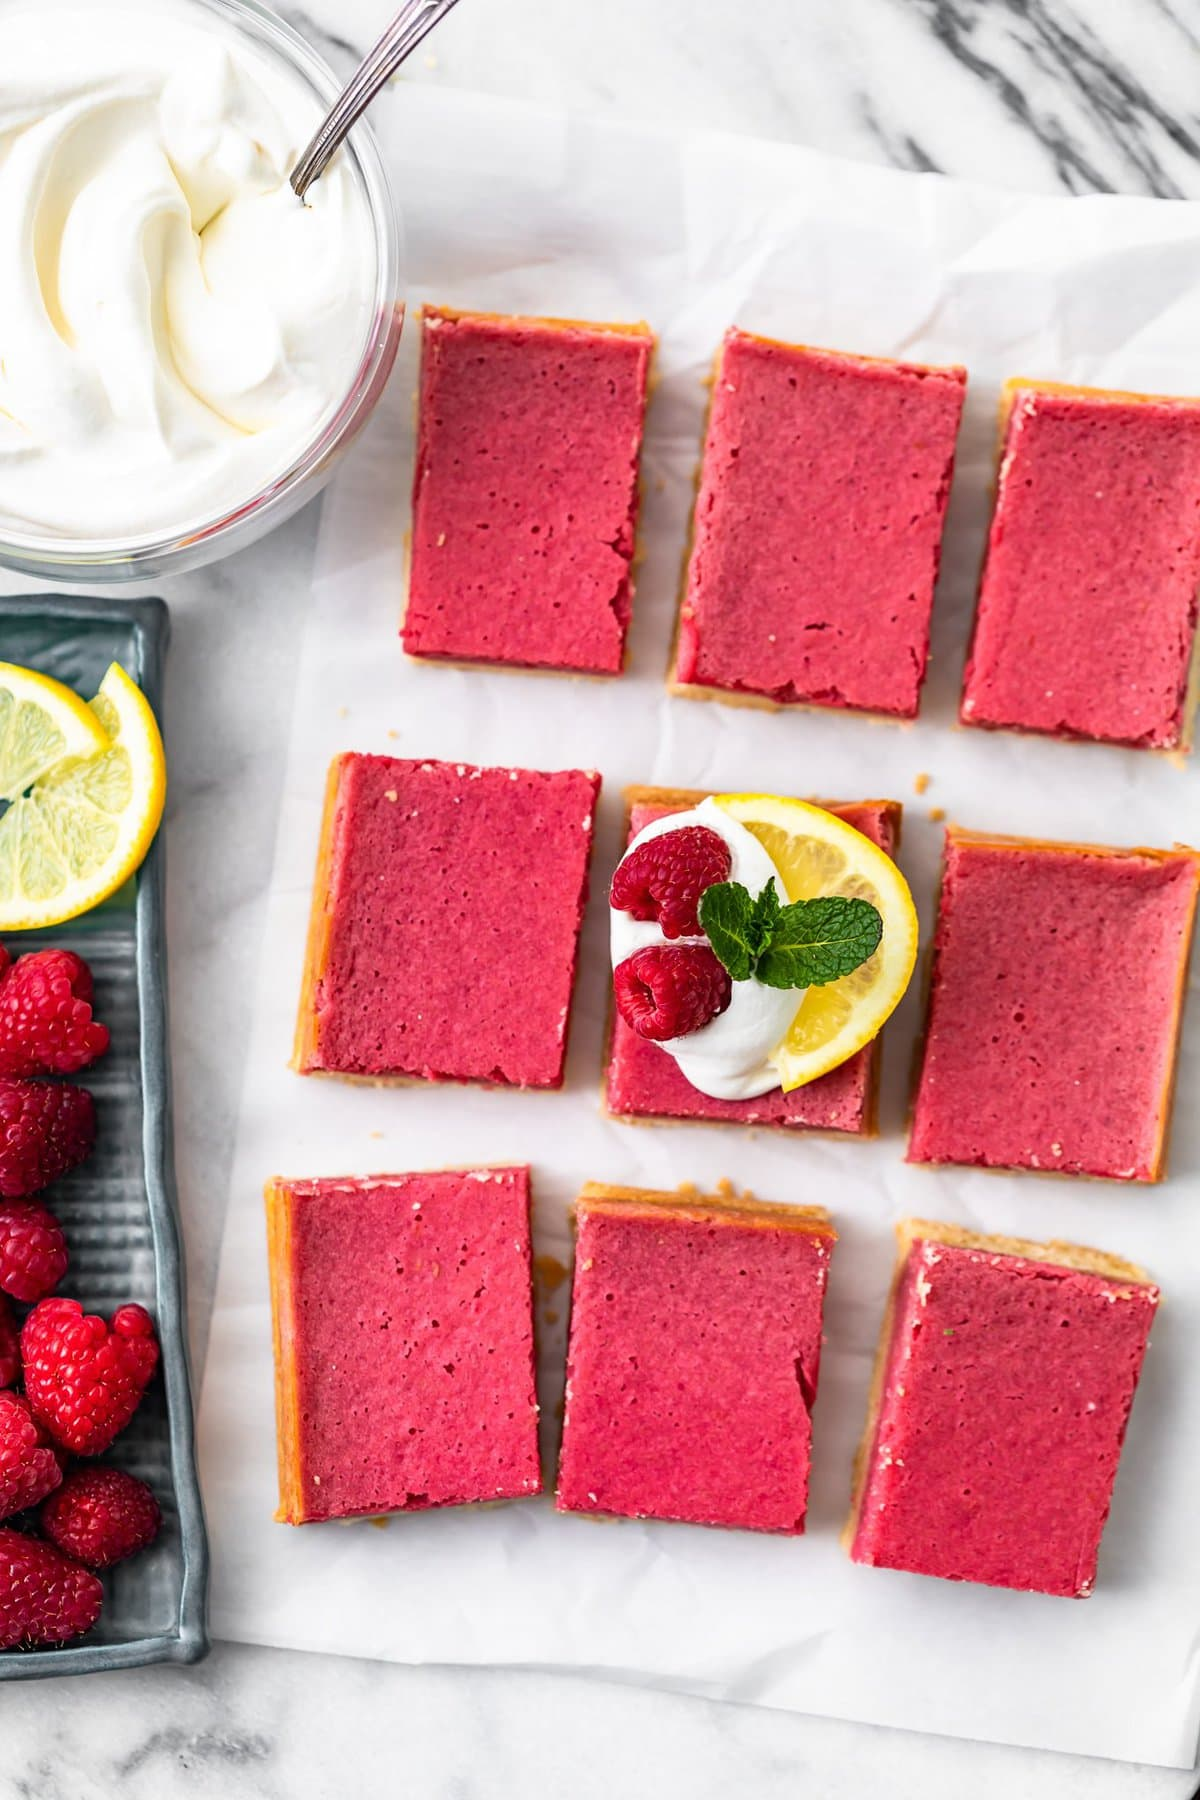 raspberry bars arranged on a sheet of parchment paper